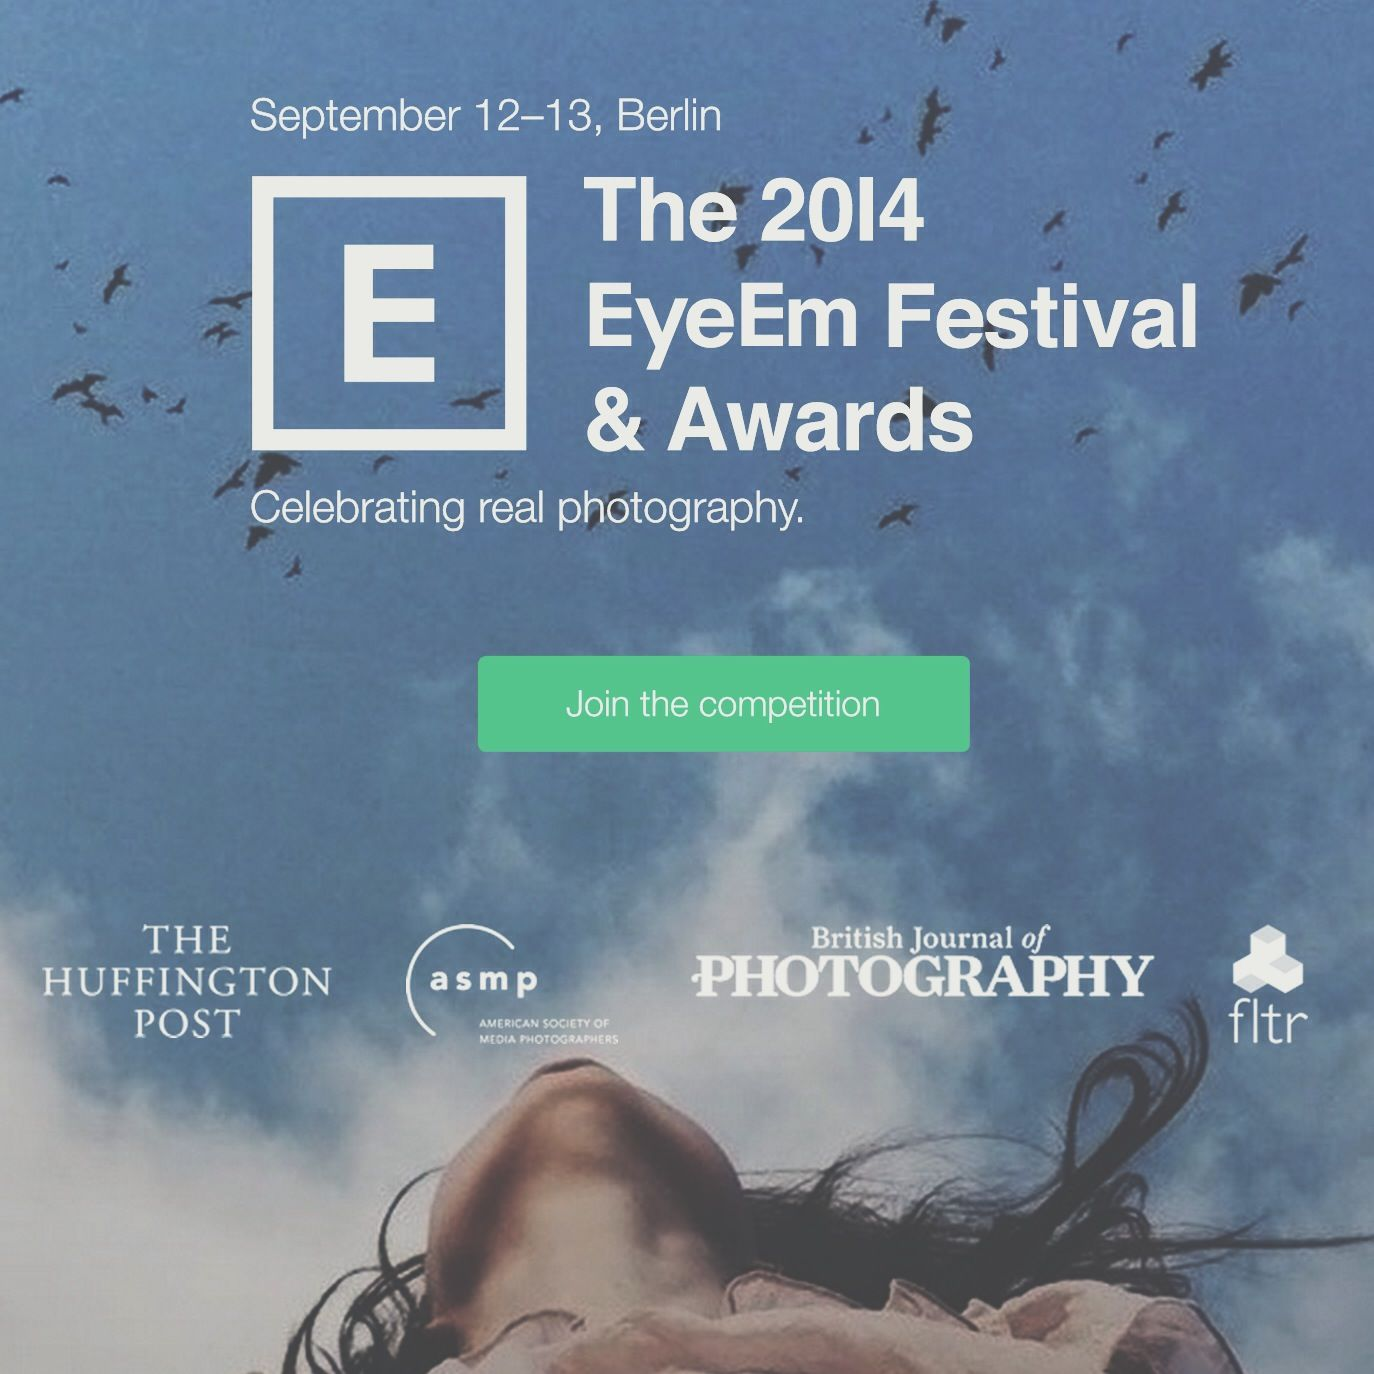 The 2014 EyeEm Festival & Awards